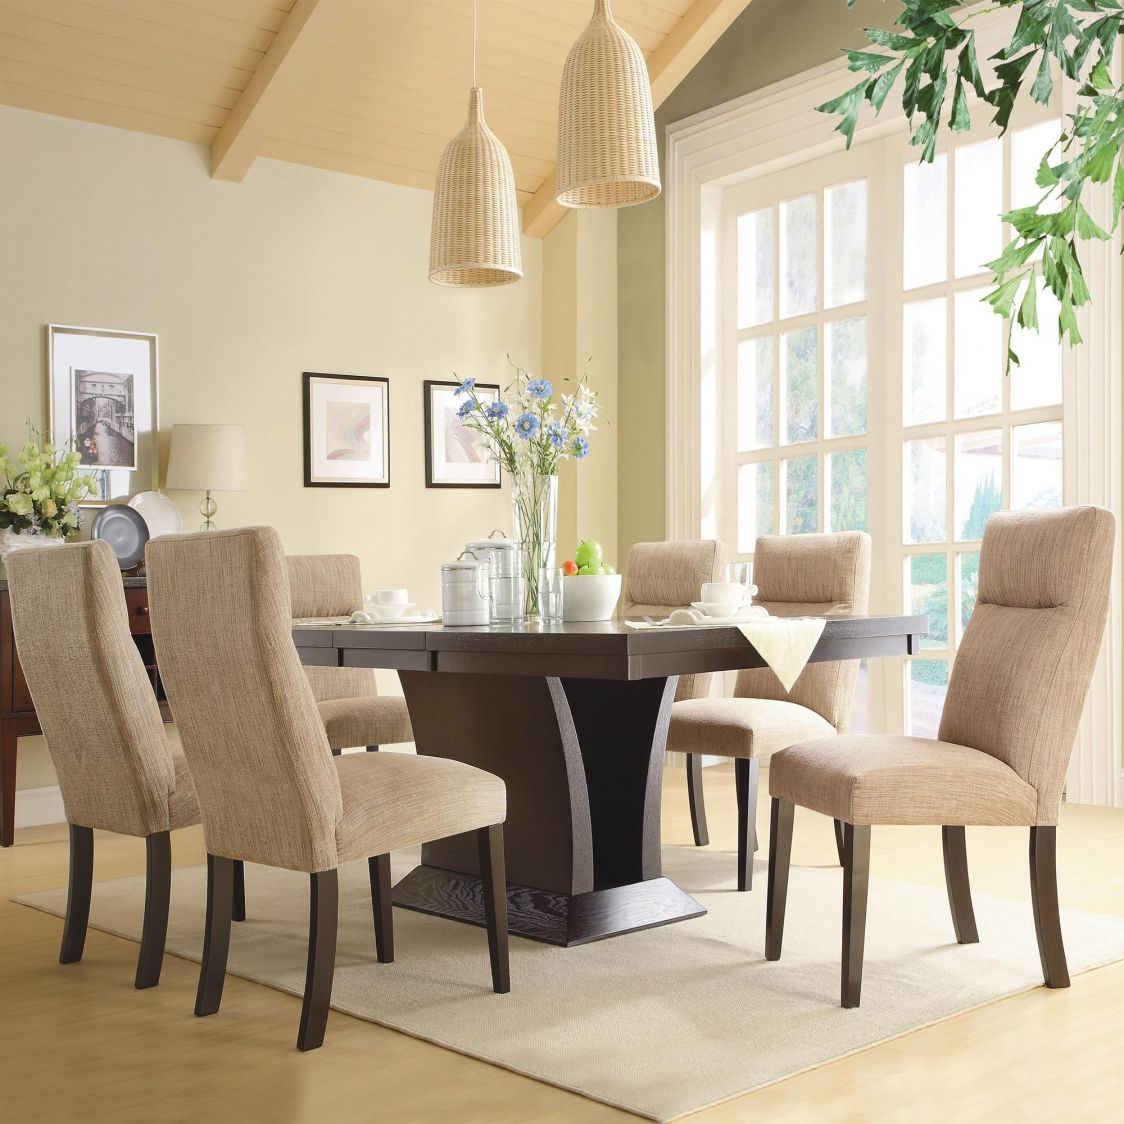 Tribecca Dining Room Set Americas Best Furniture Check More At